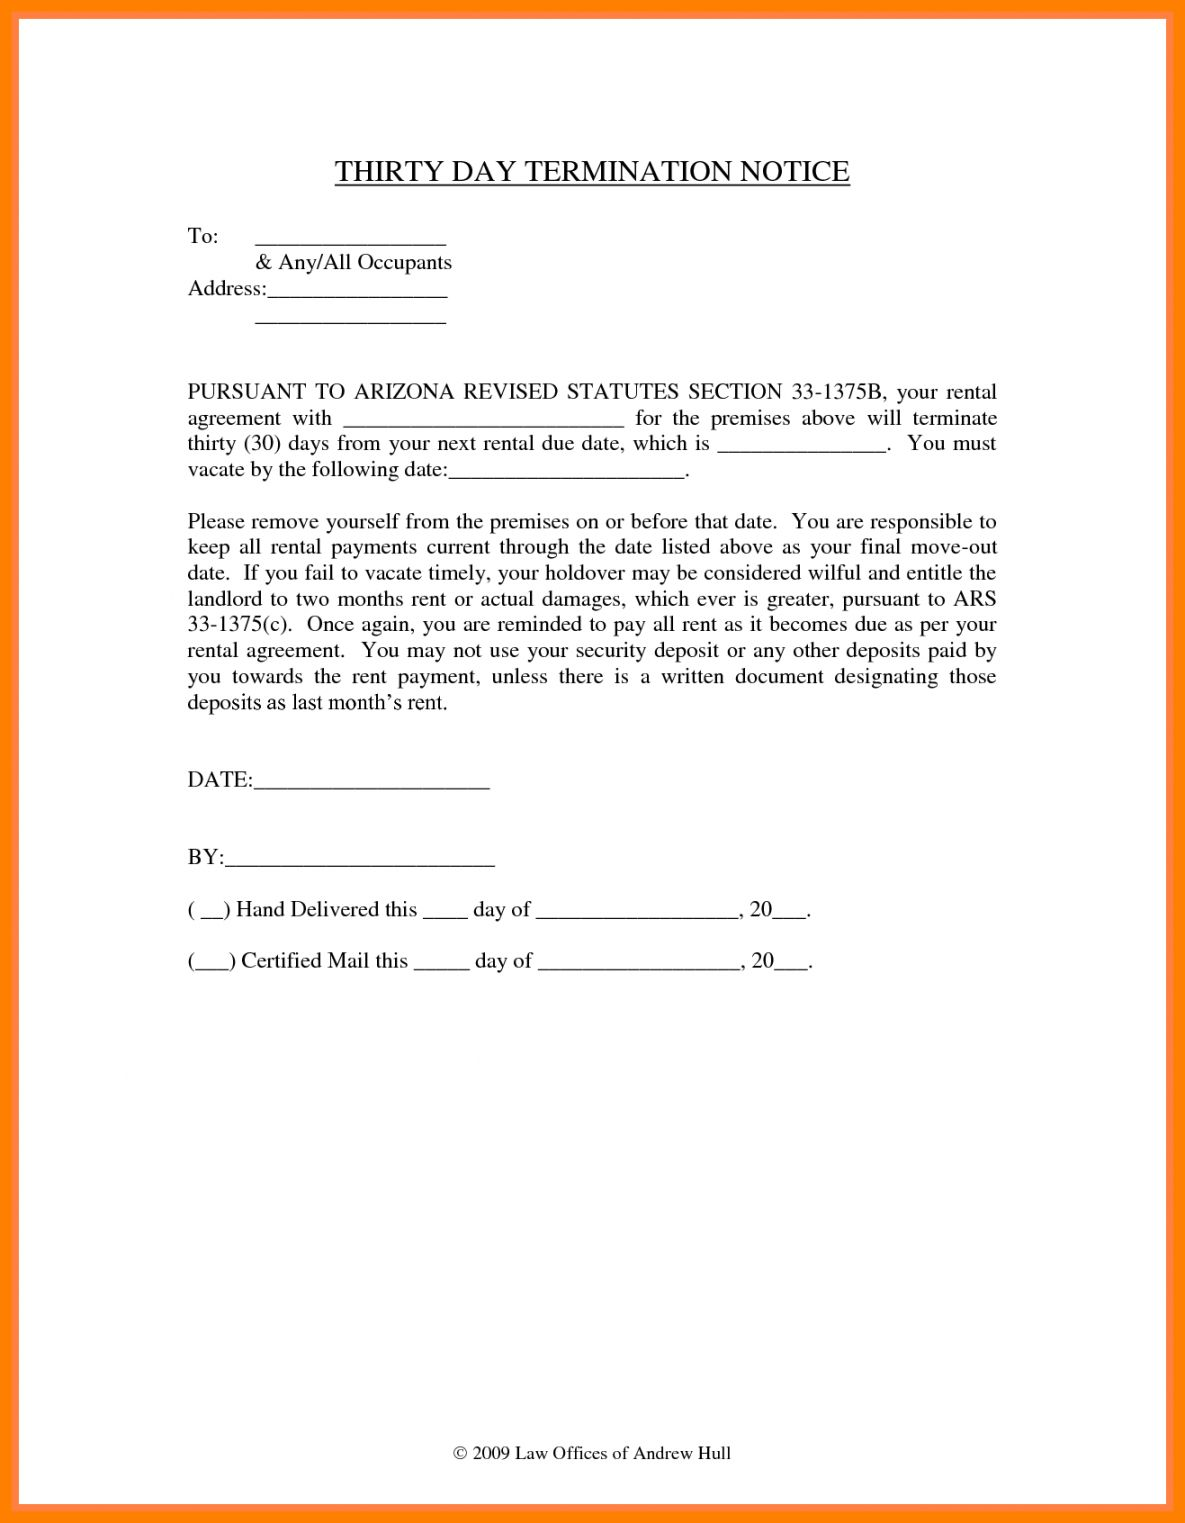 Get Our Image of 8 Day Notice To Vacate Apartment Template